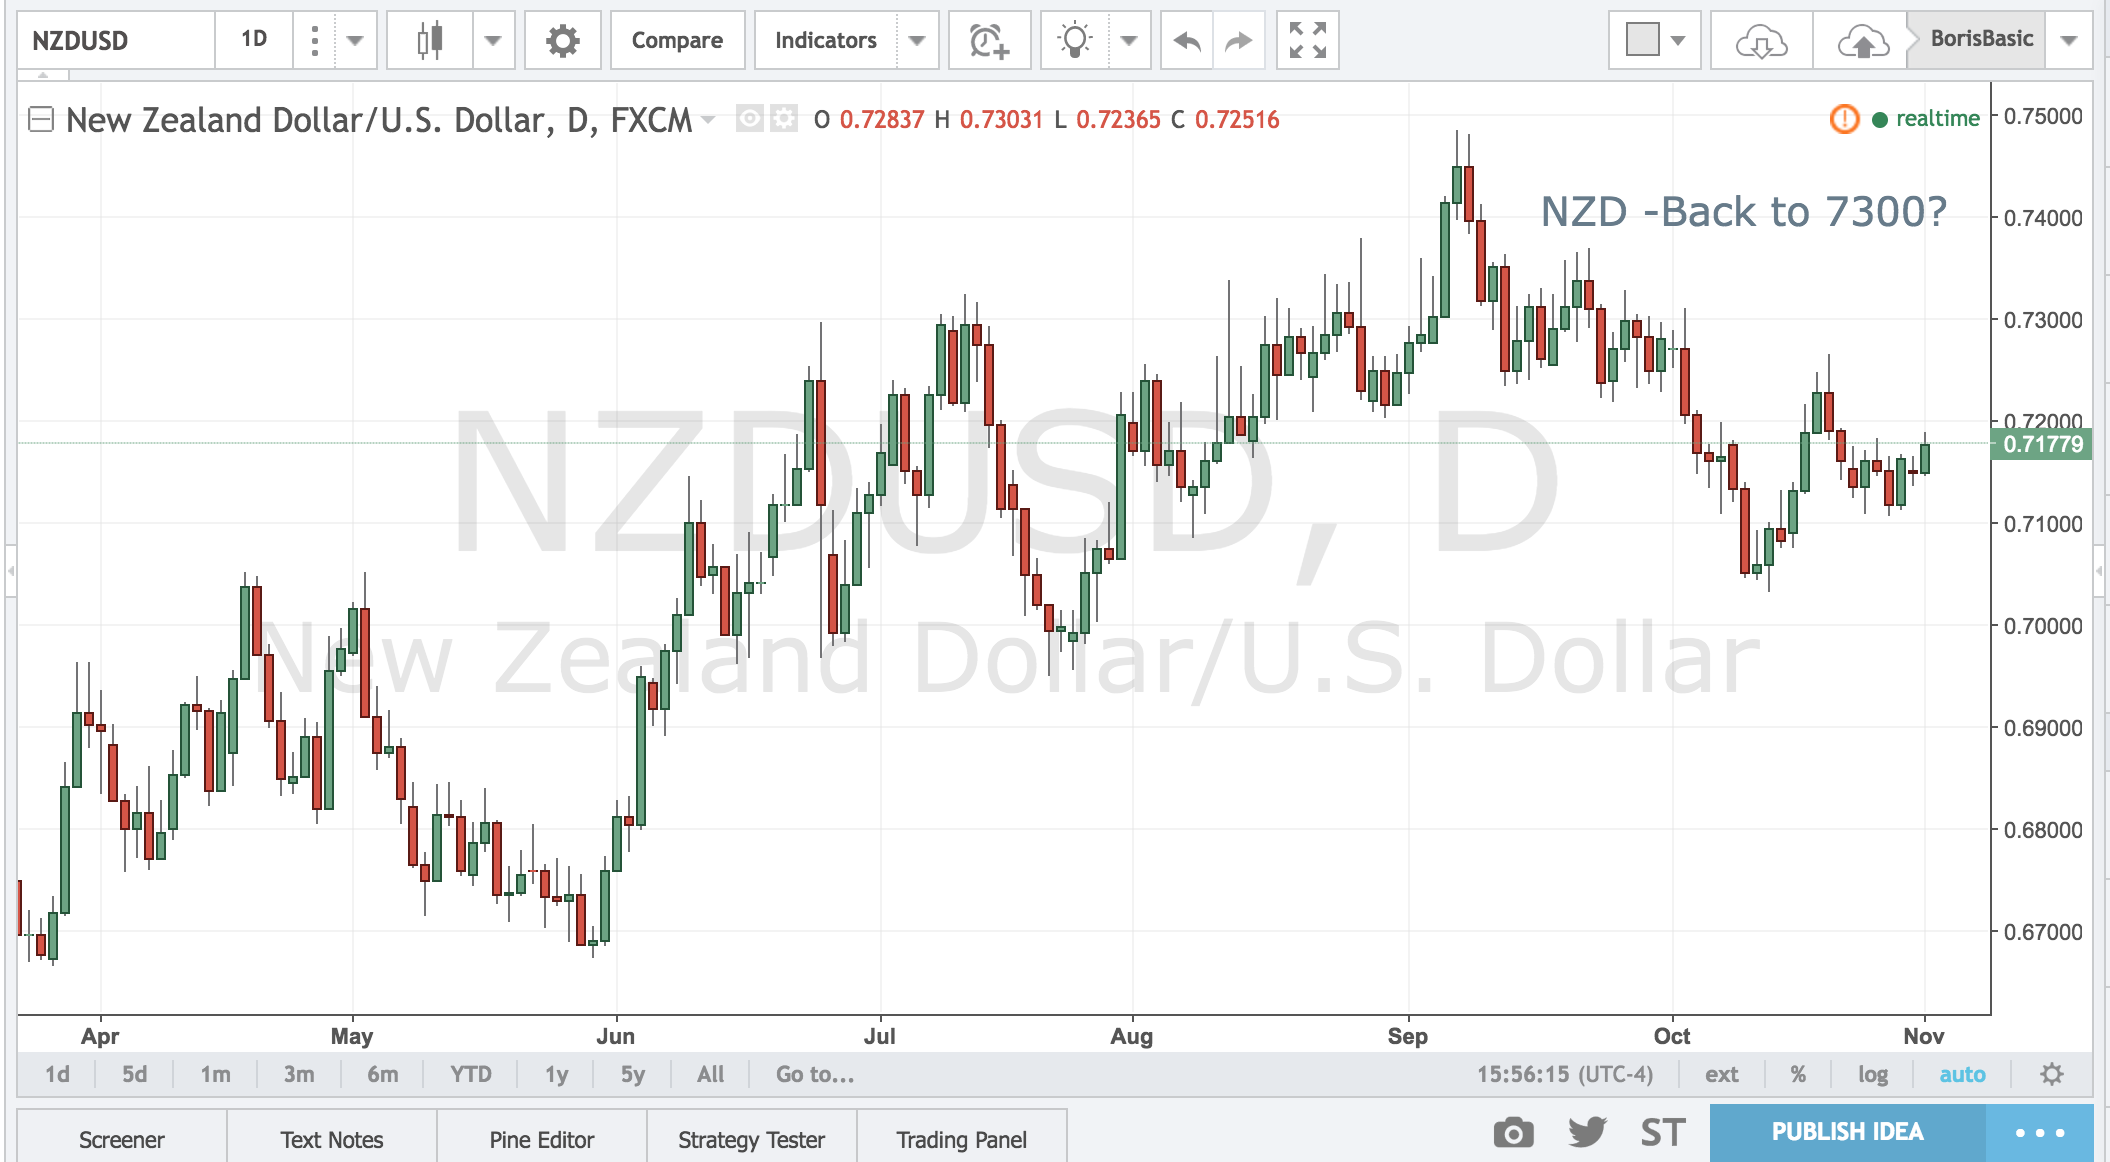 NZD – Back to 7300?